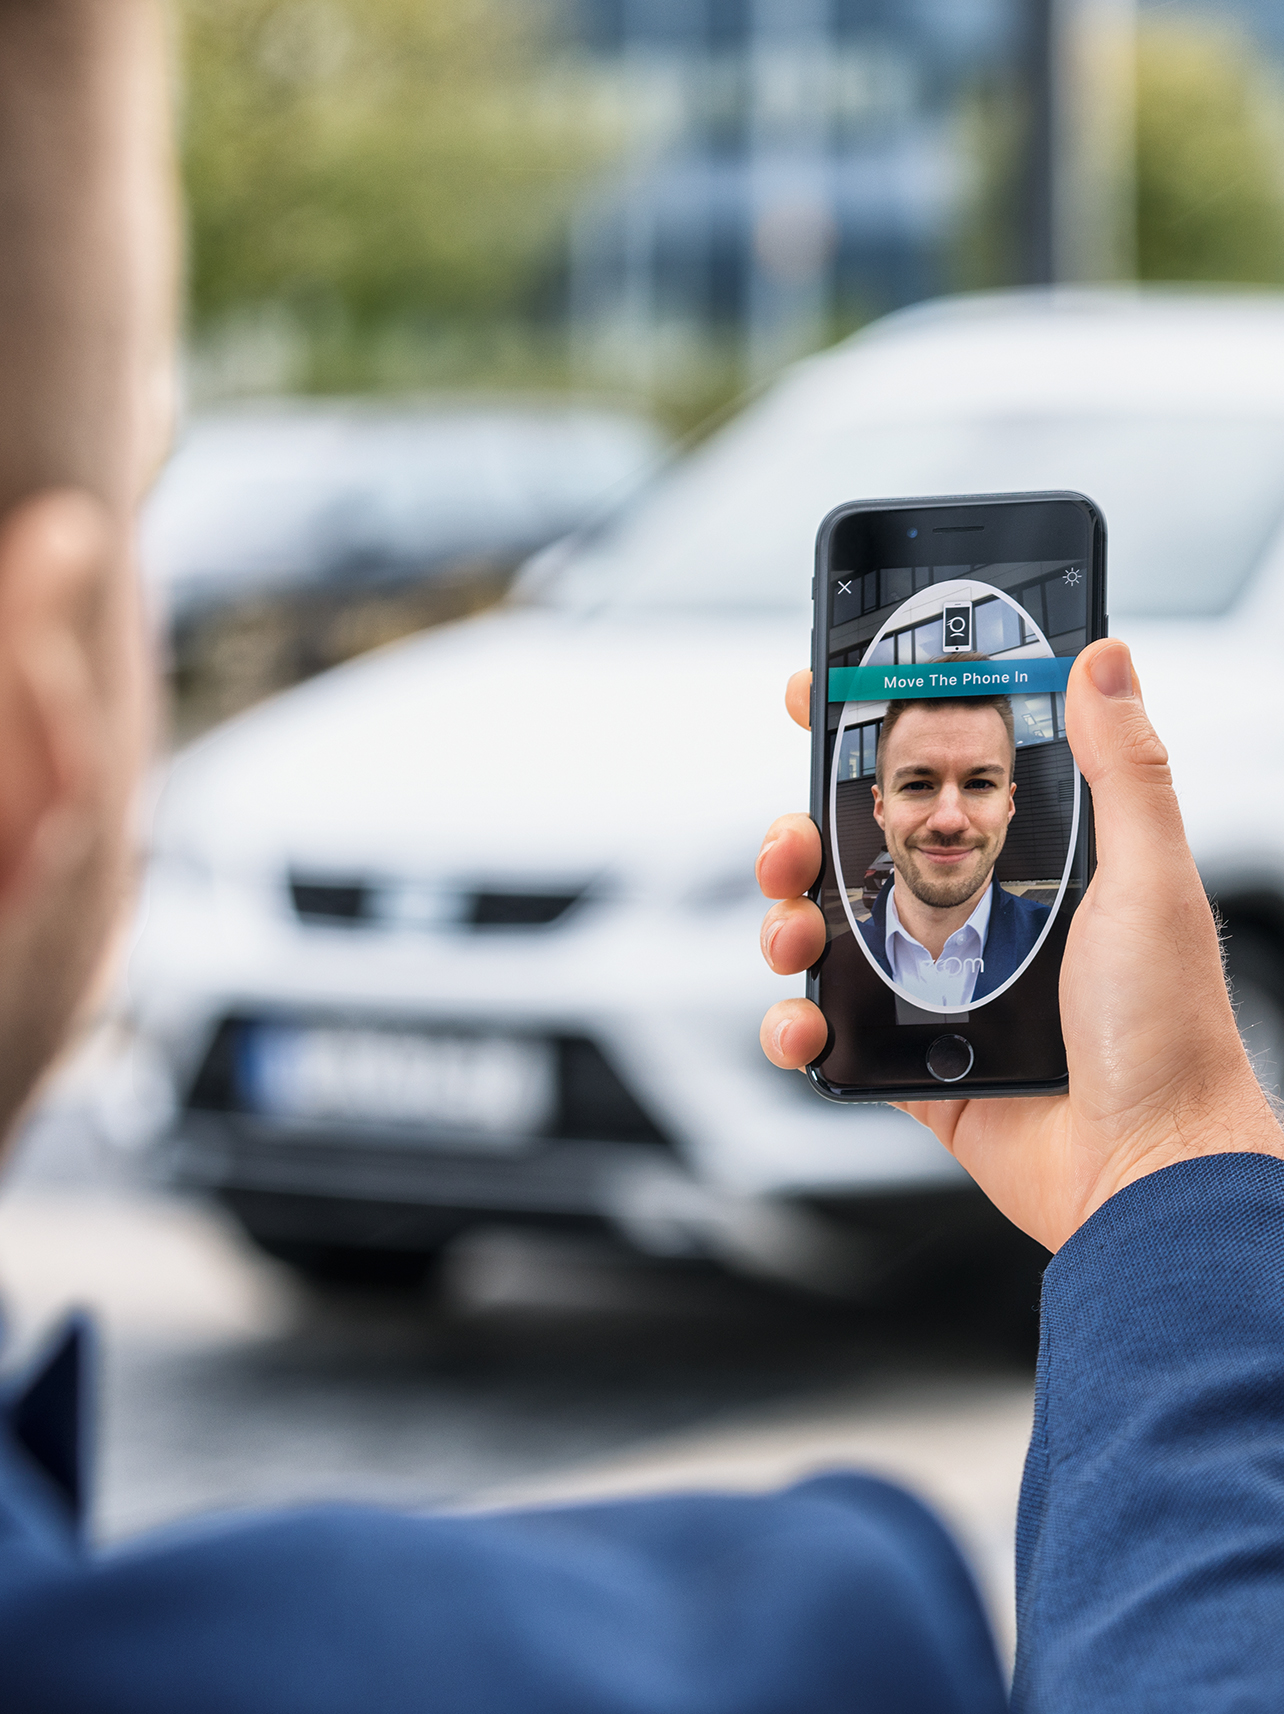 automotion 1801 08 Smartphone Gesichtserkennung FaceTec 3 4